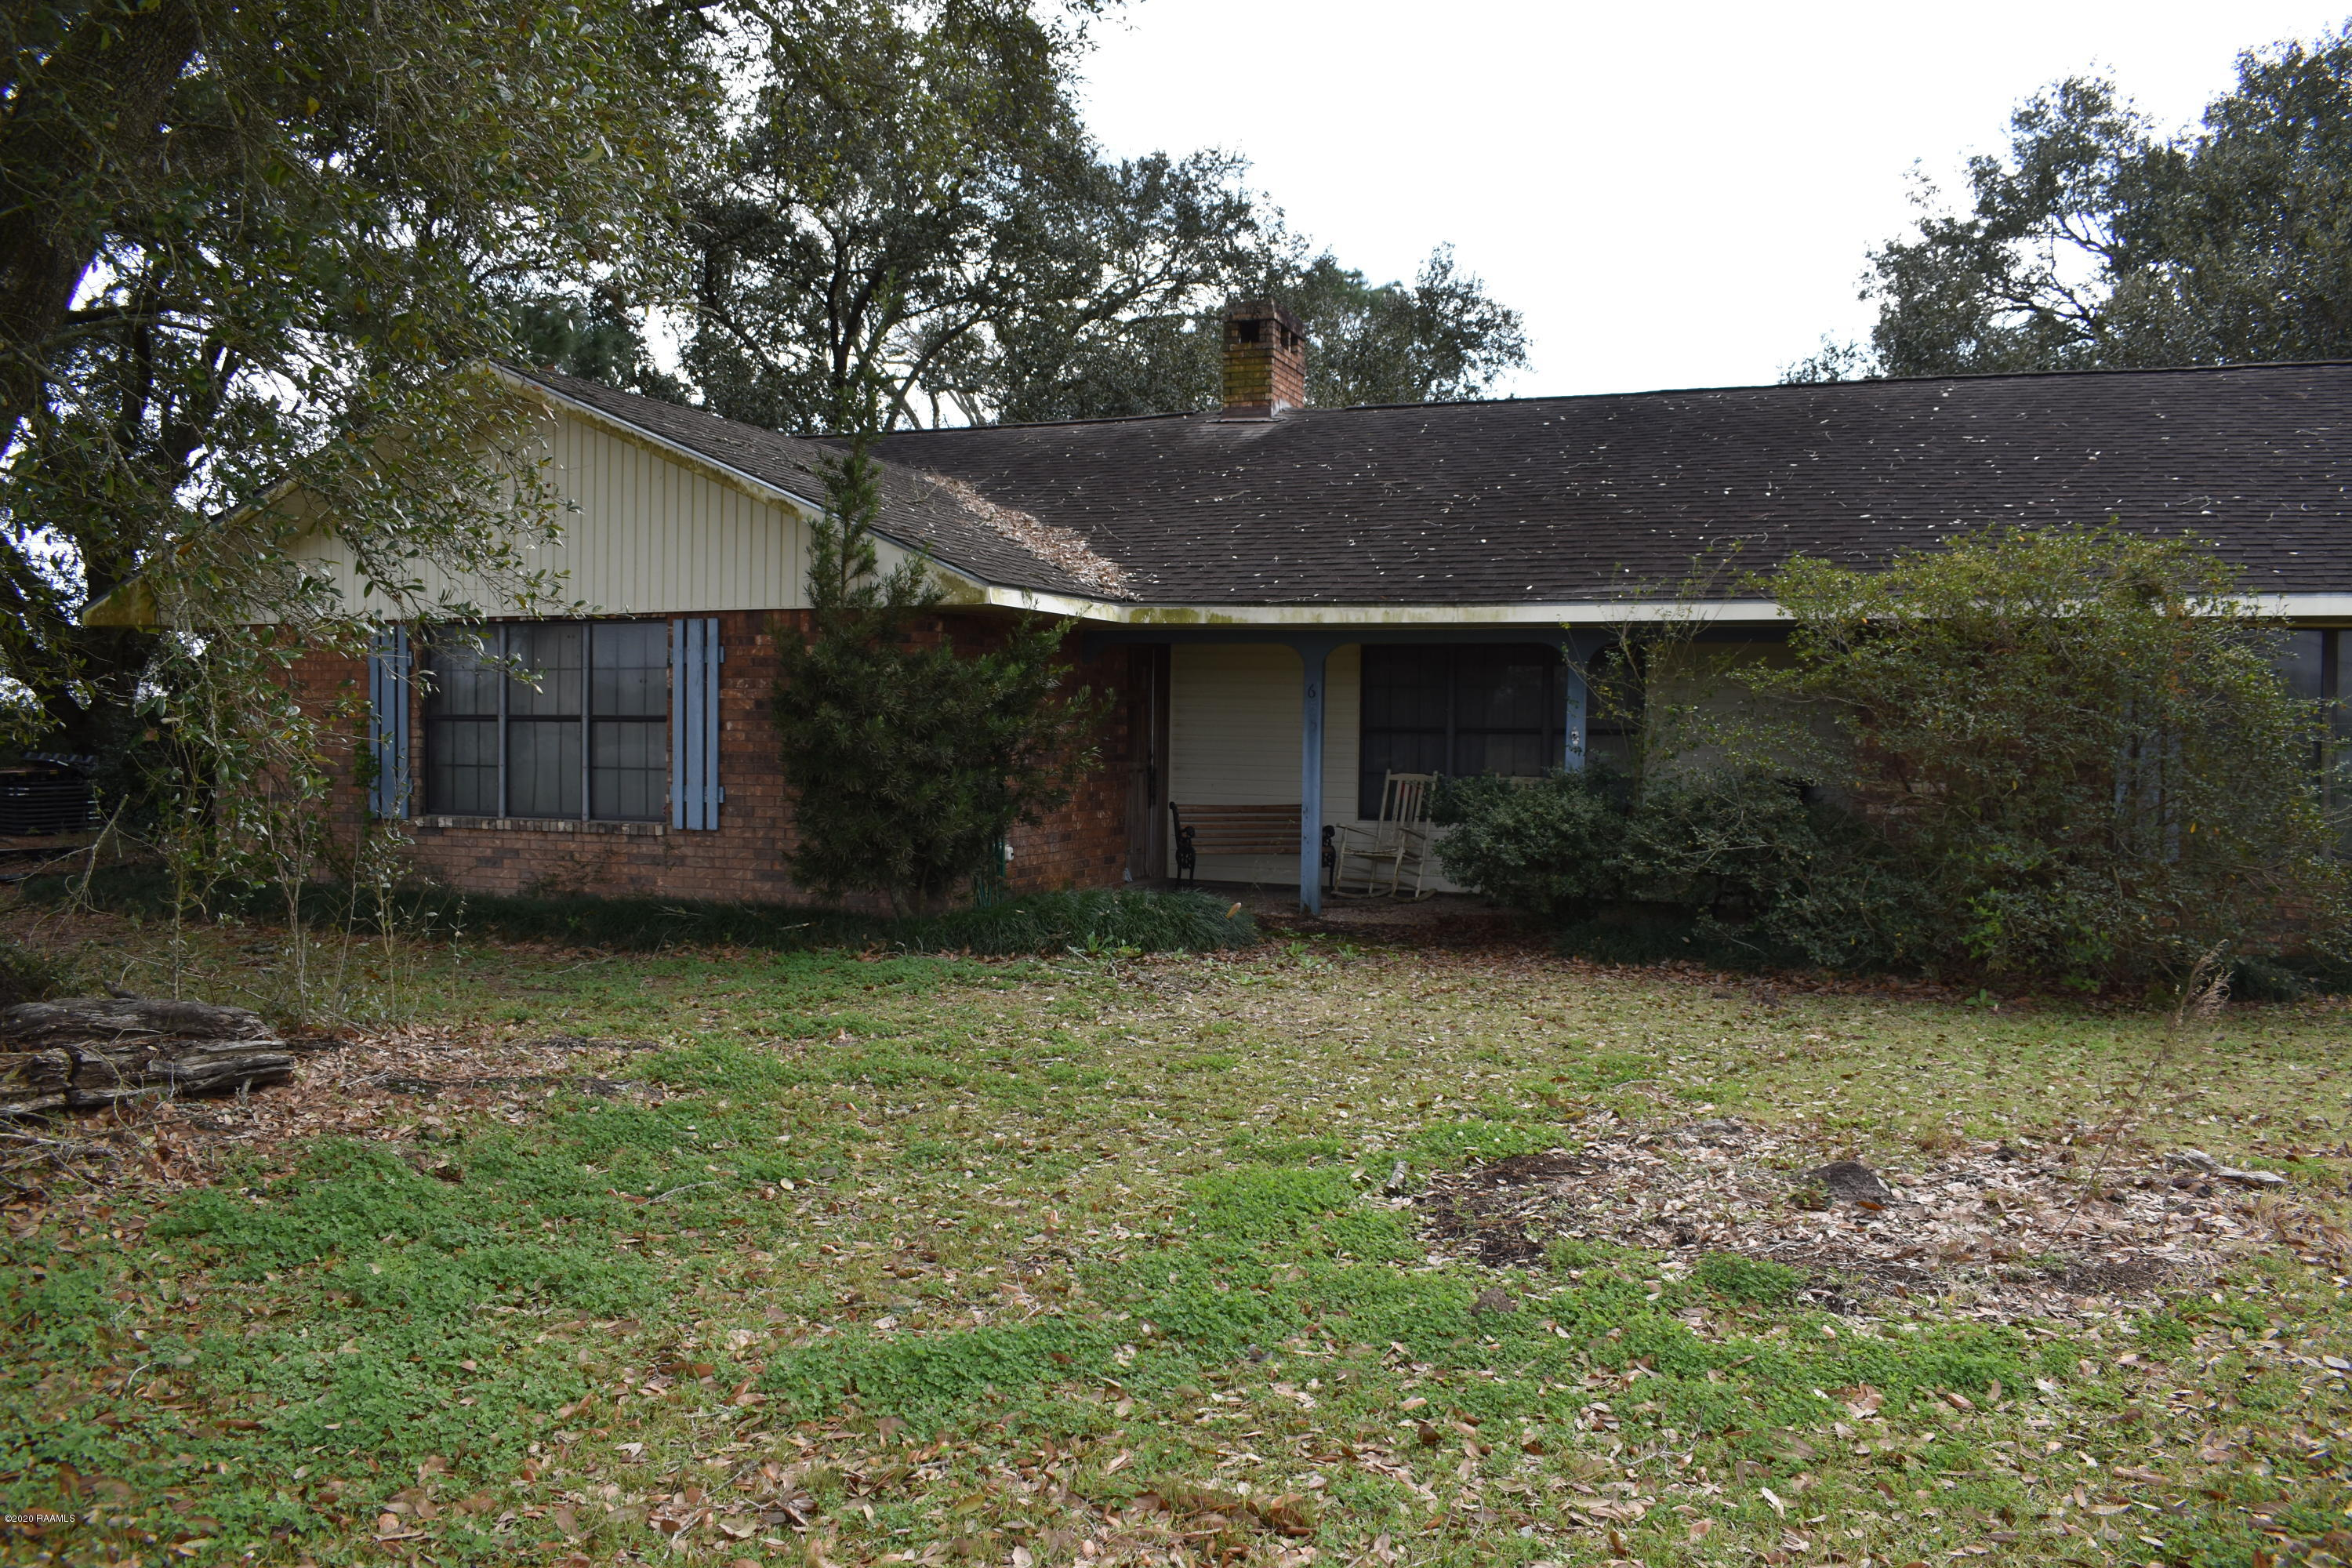 655 Saddle Drive, Eunice, LA 70535 Photo #2